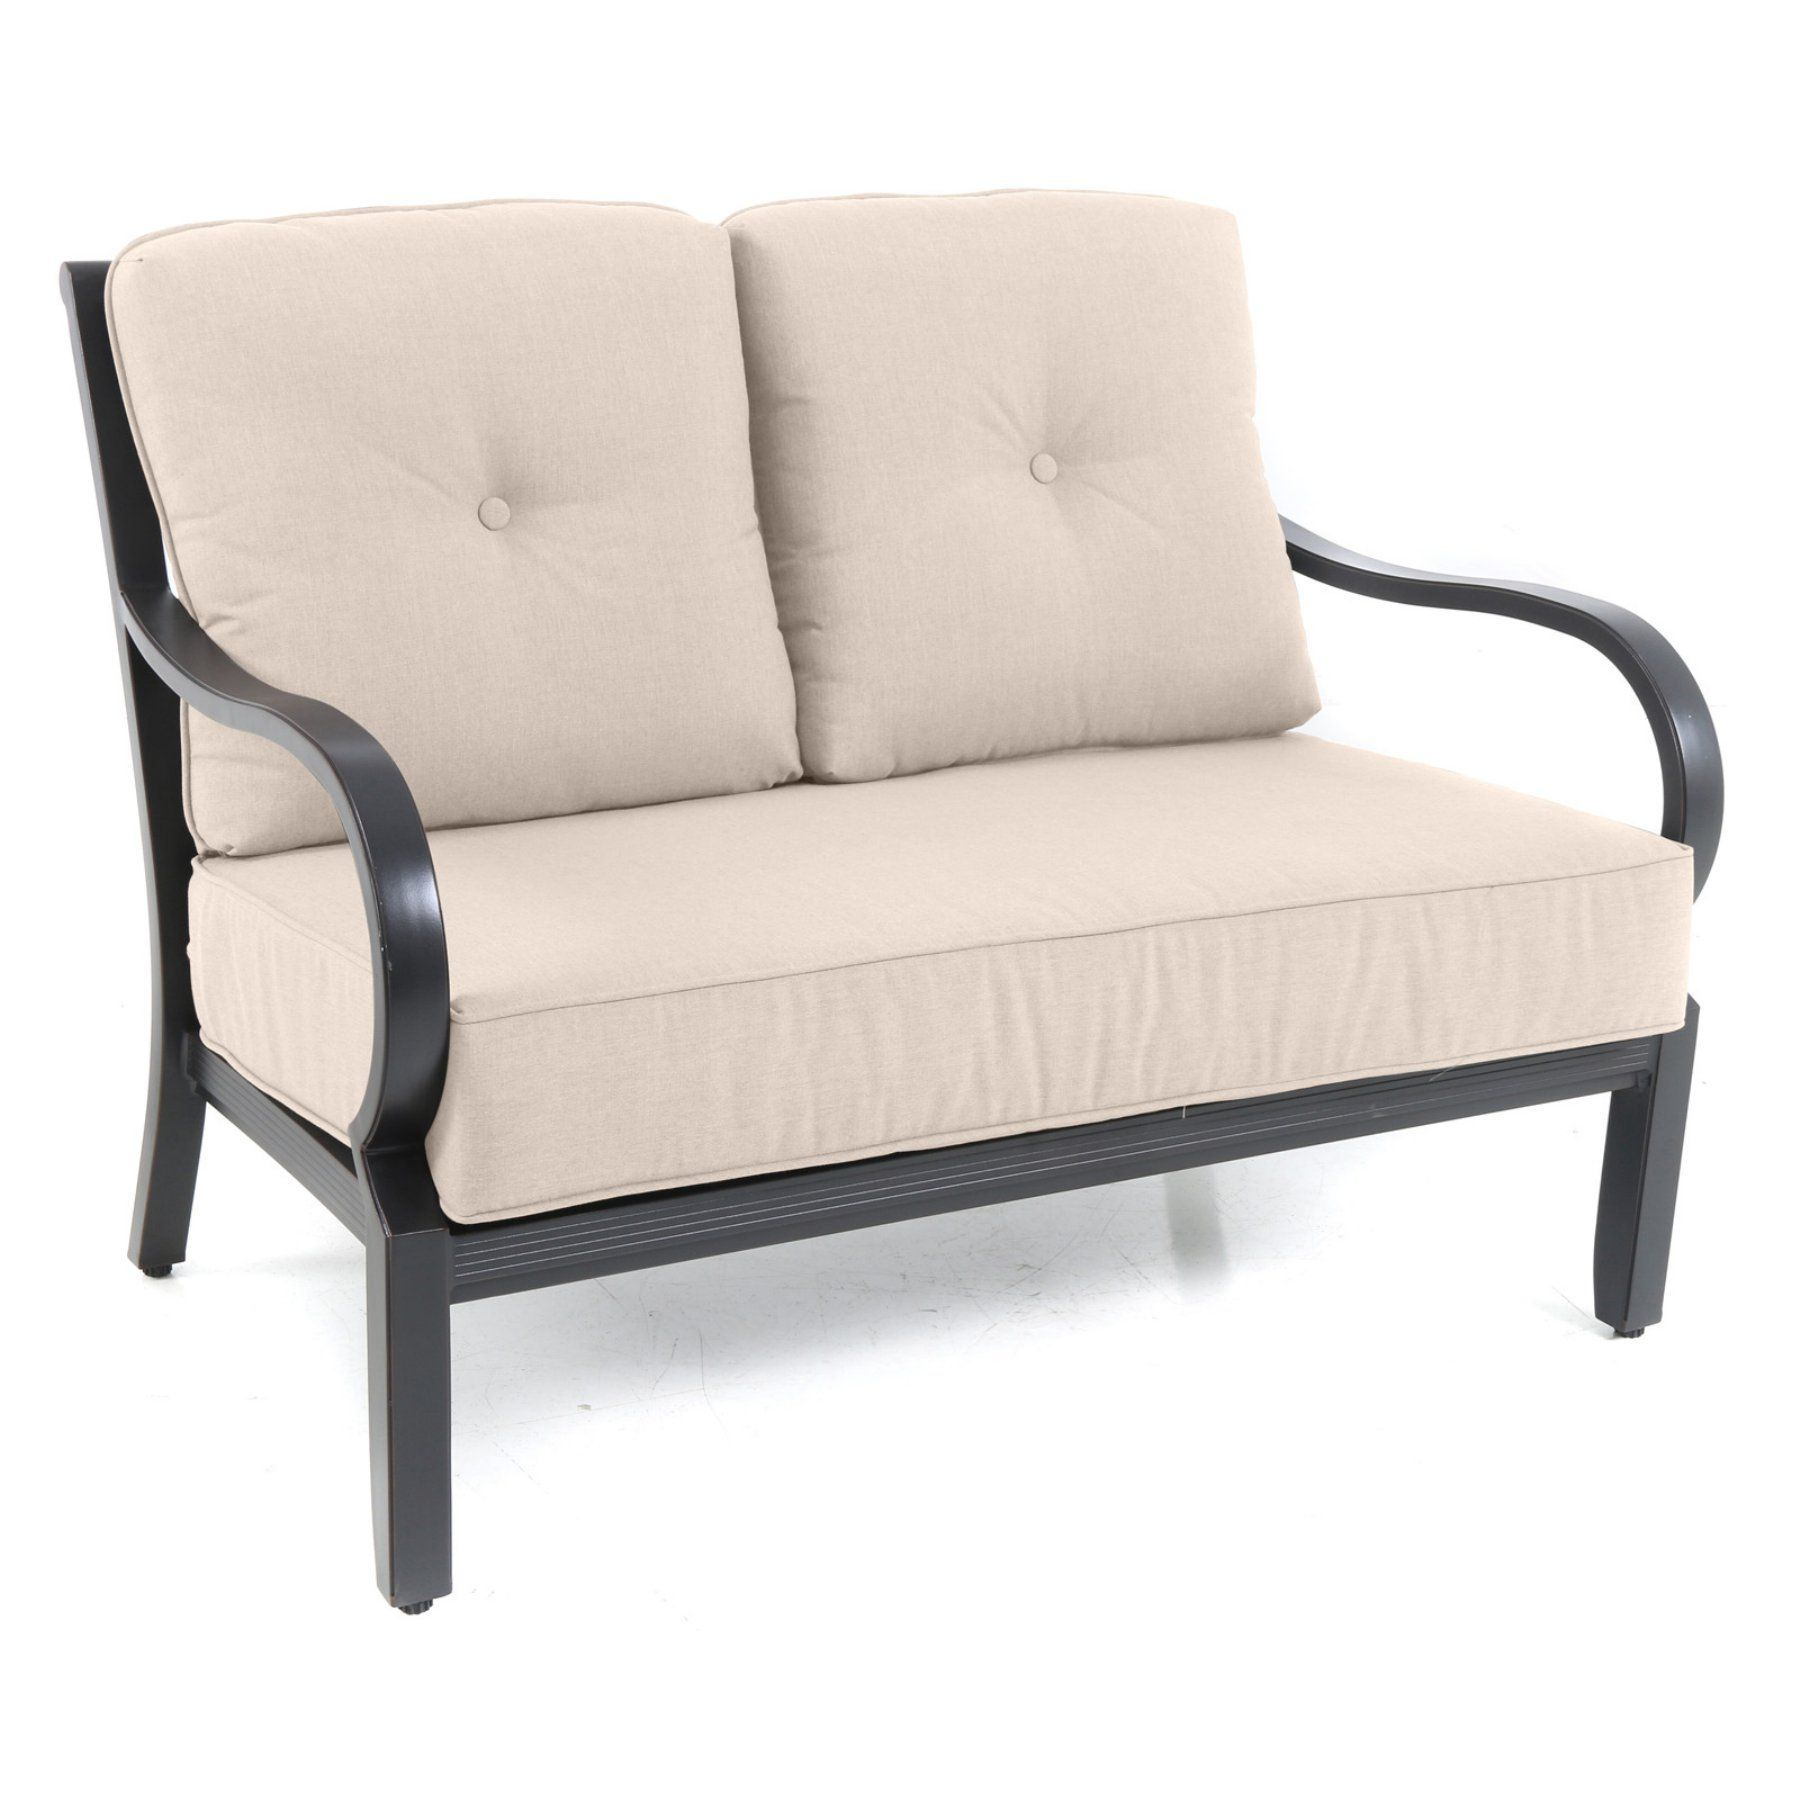 Royal Garden Laurus Aluminum Outdoor Patio Loveseat with Cushion